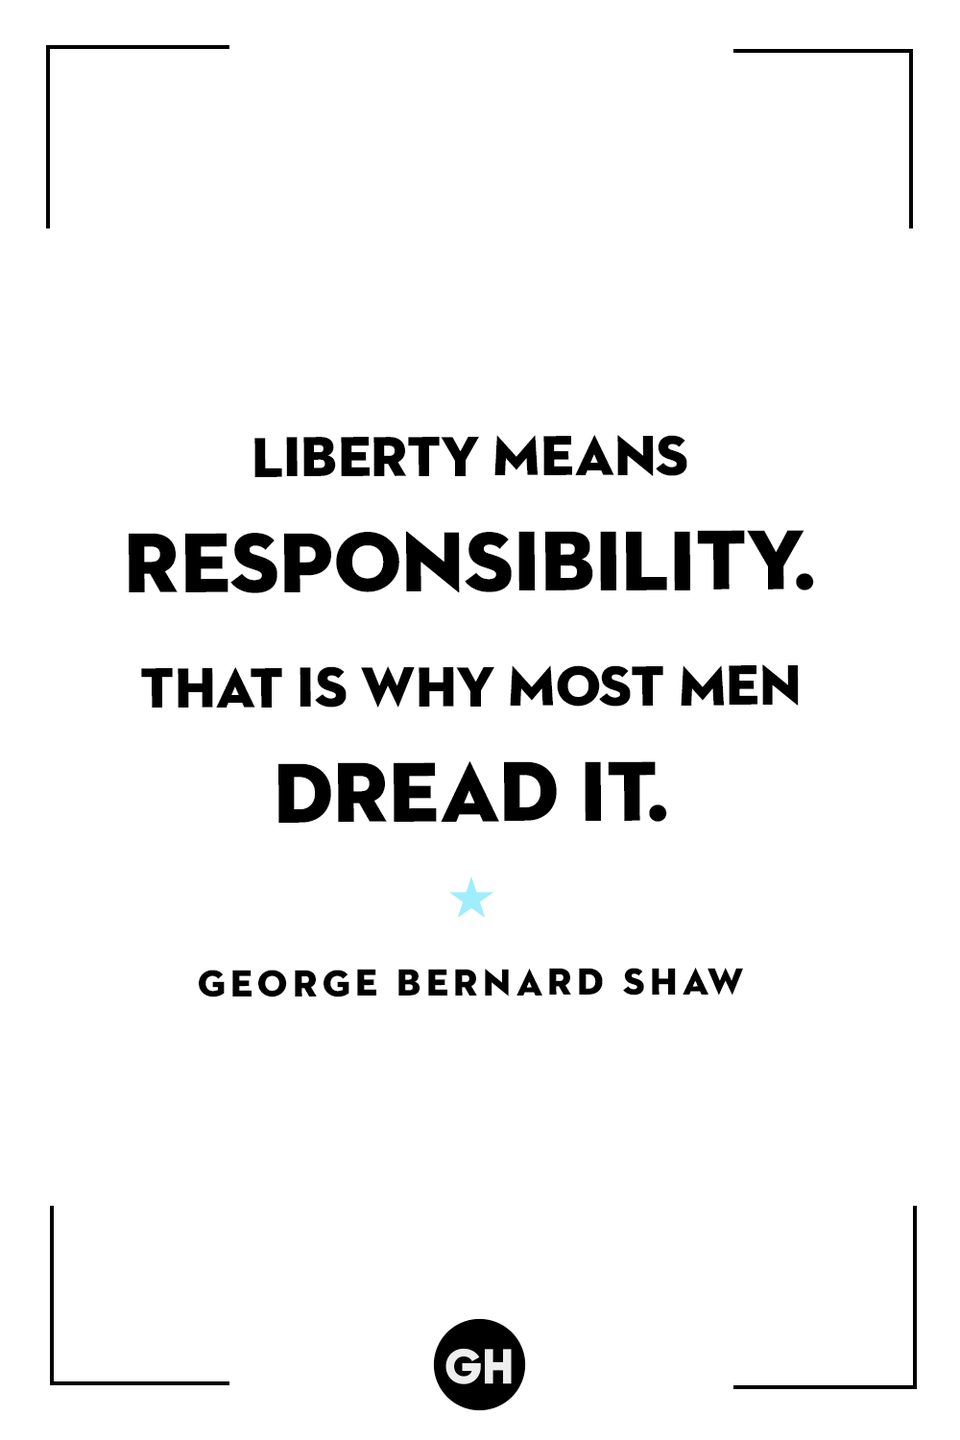 <p>Liberty means responsibility. That is why most men dread it.</p>